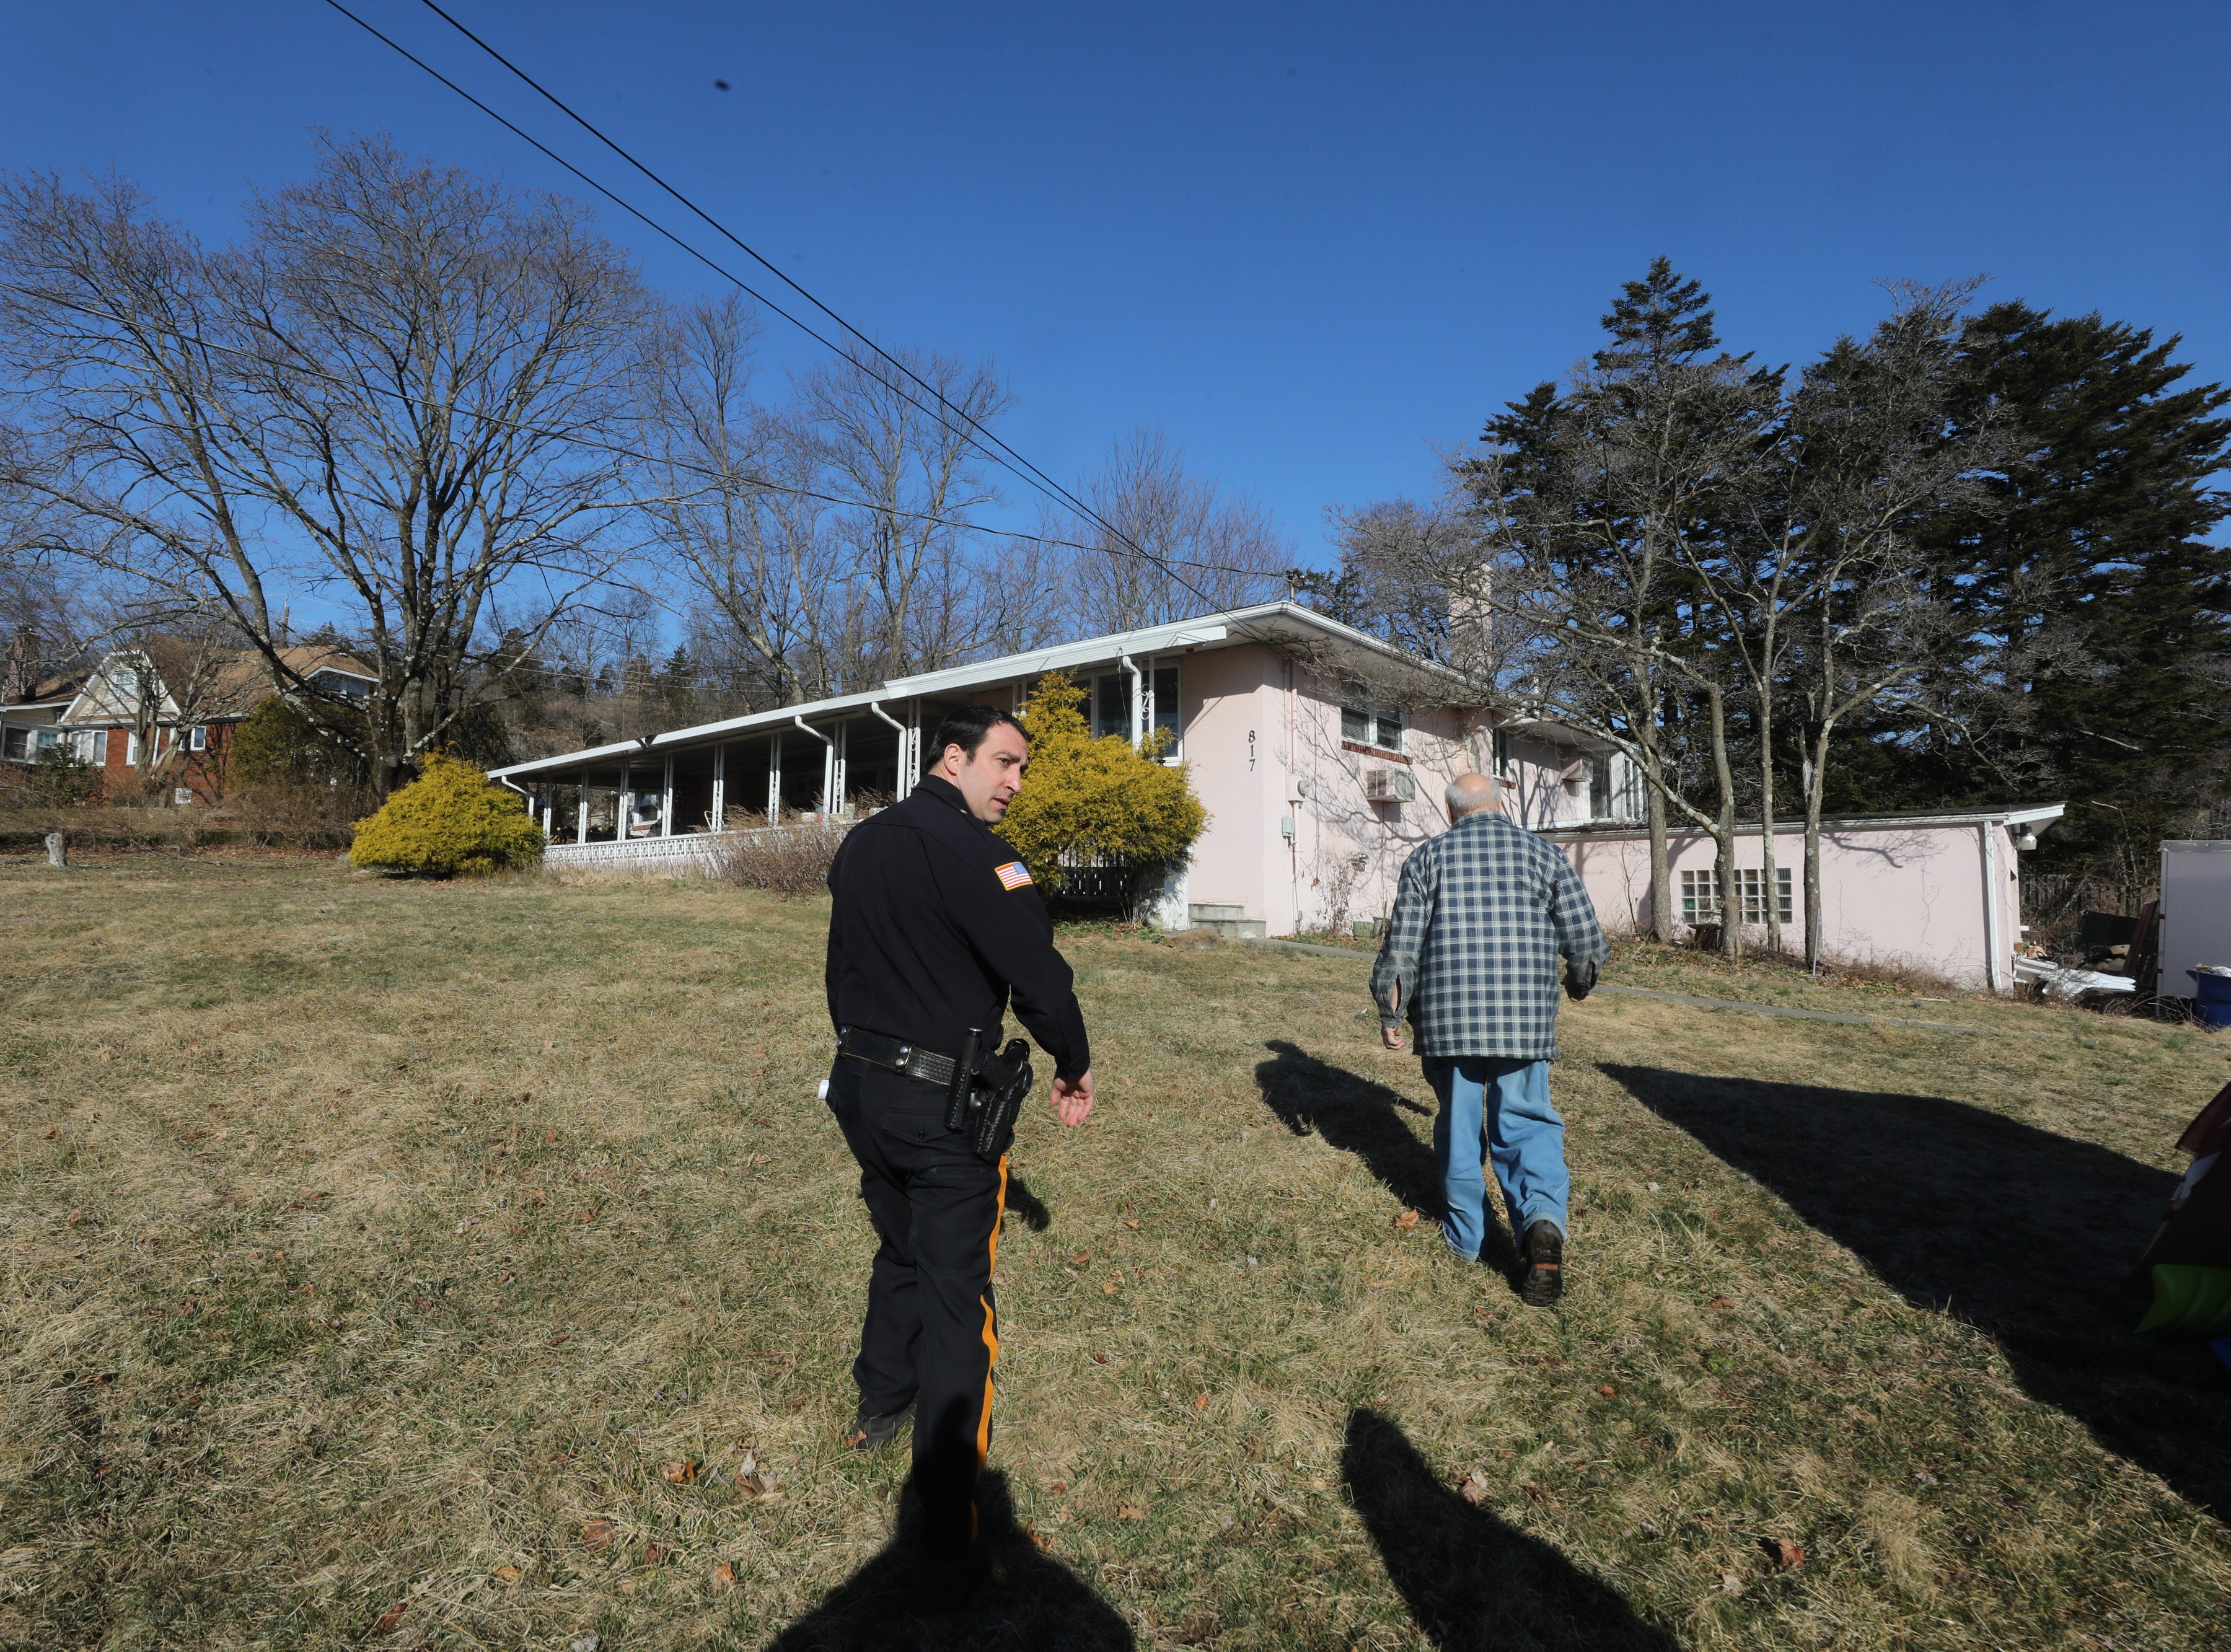 Passaic County Sheriff's Officer Nick D'Agostino and Charles D'Alessandro walk to D'Alessandro's home that he is being evicted from on March 19, 2019, after failing to pay the mortgage for the past 10 years.